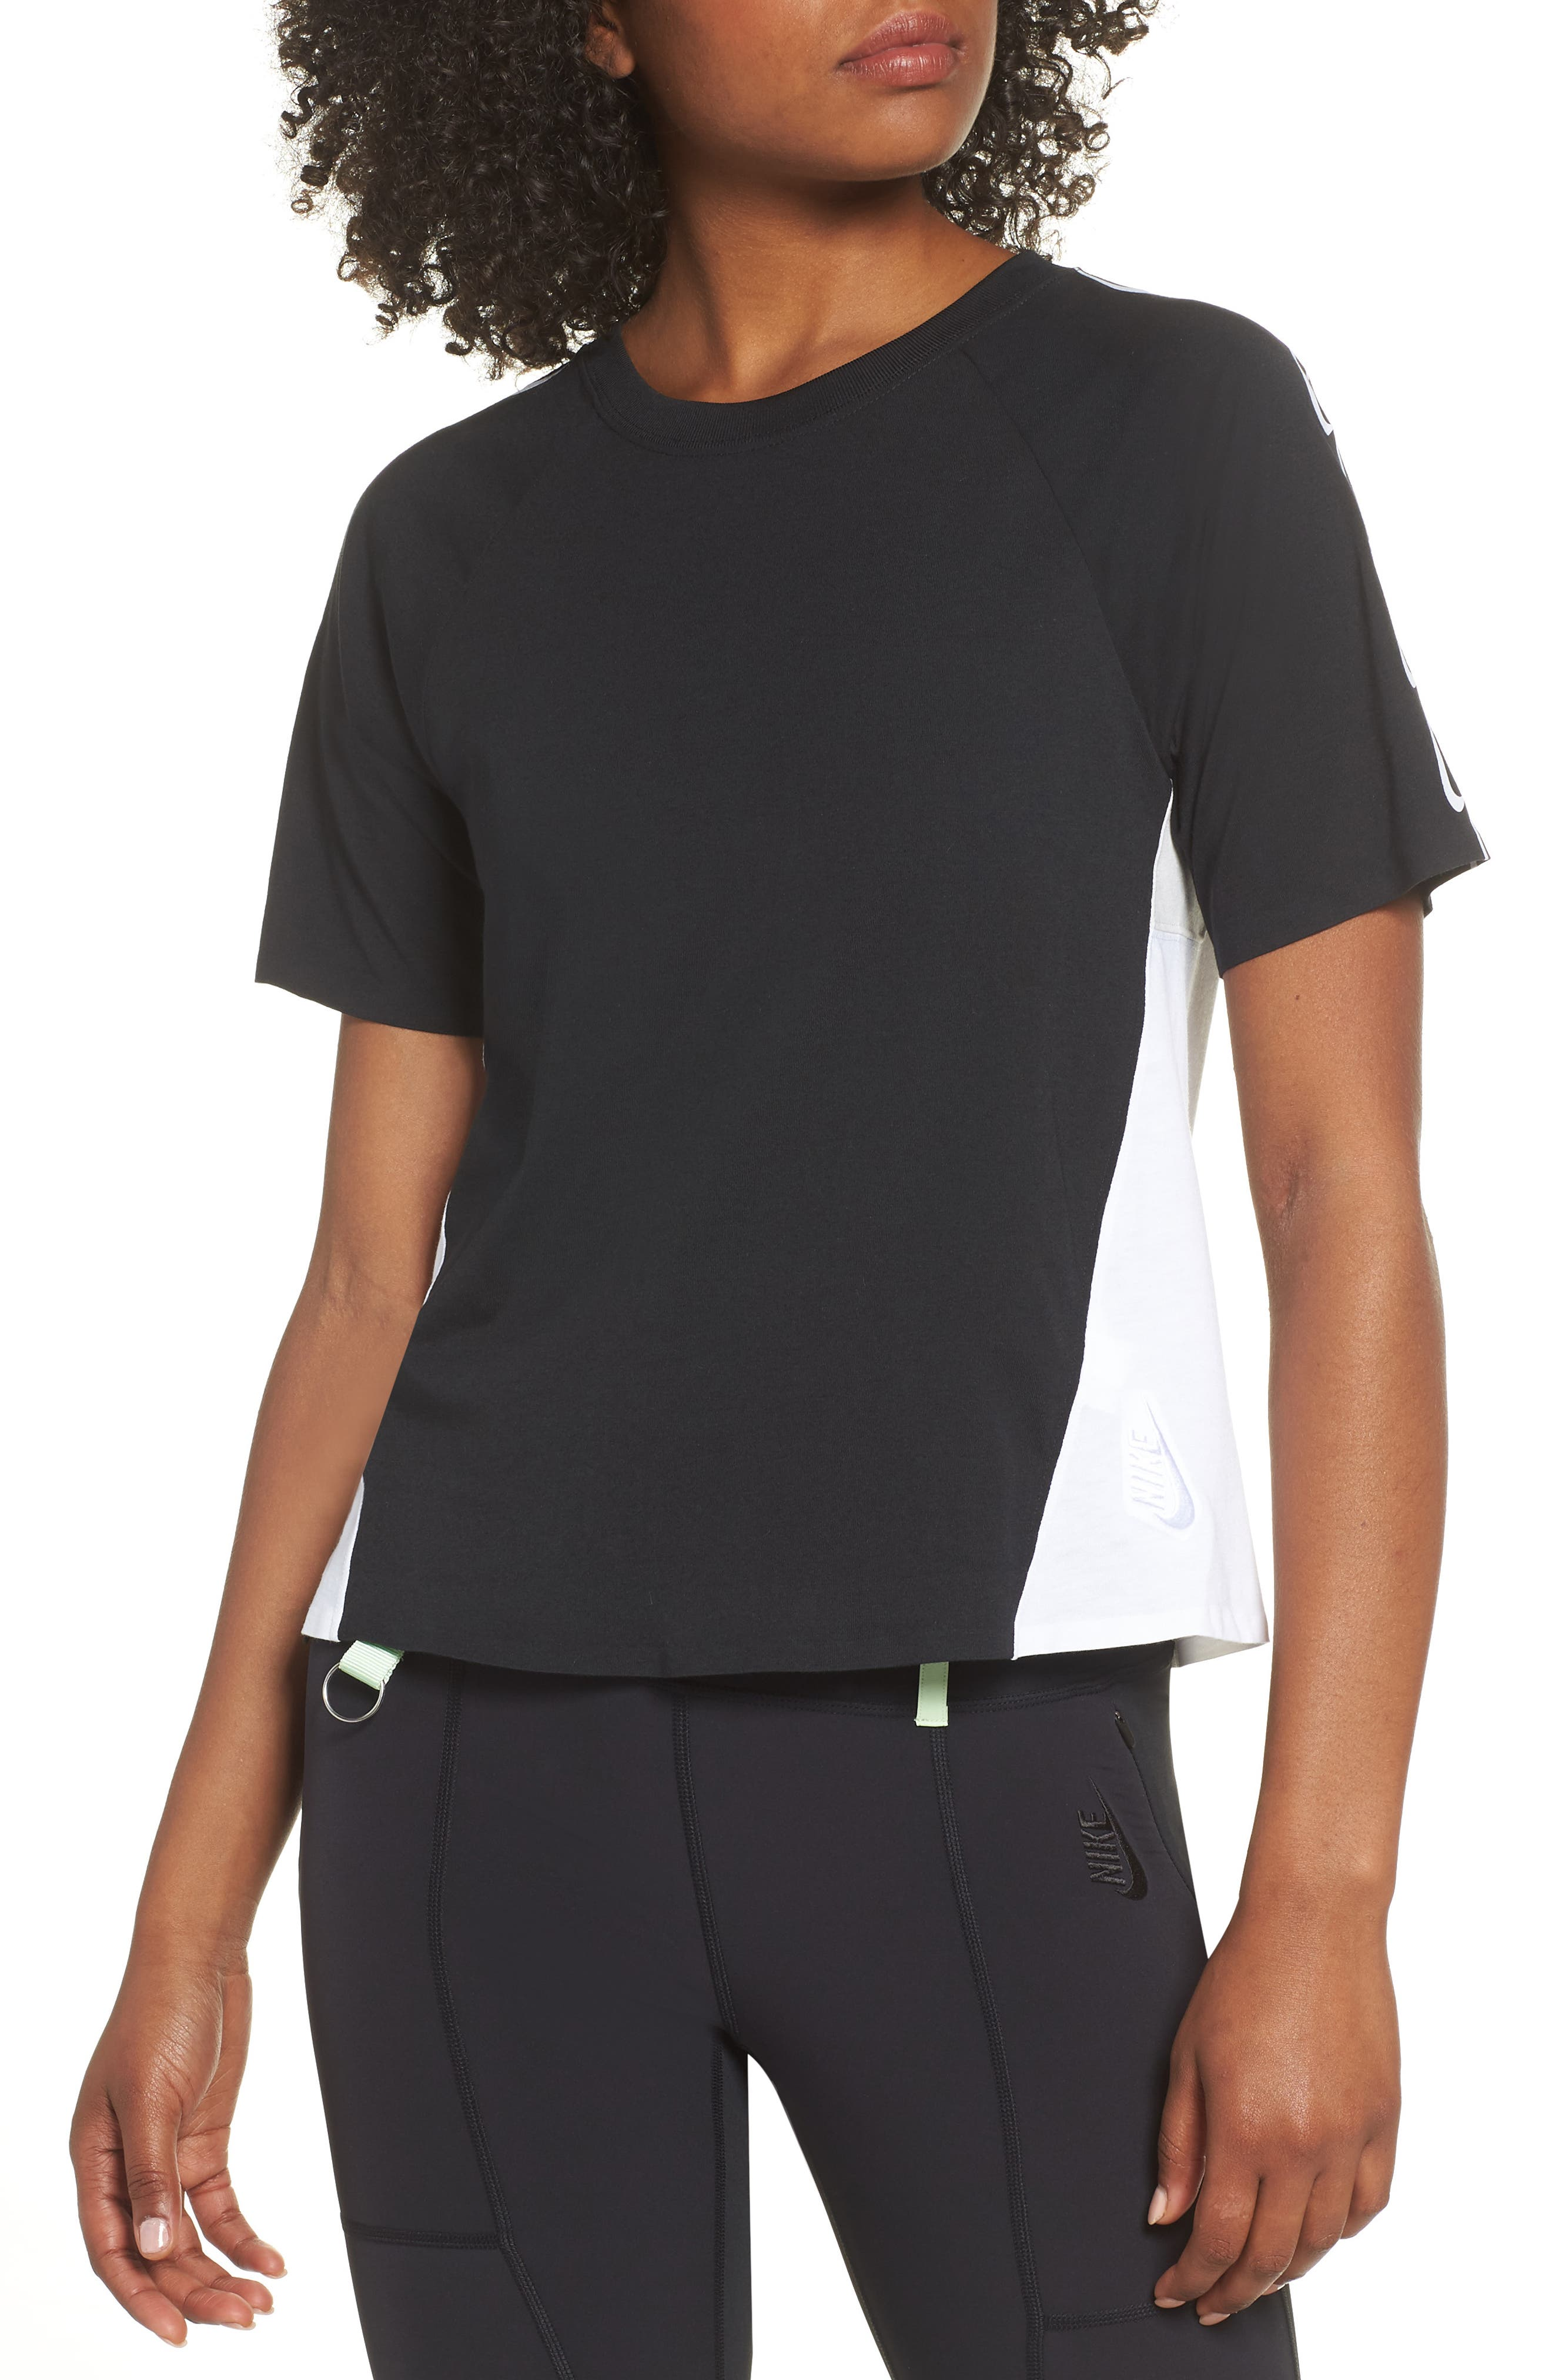 NRG Women's Dri-FIT Short Sleeve Top,                         Main,                         color, 010